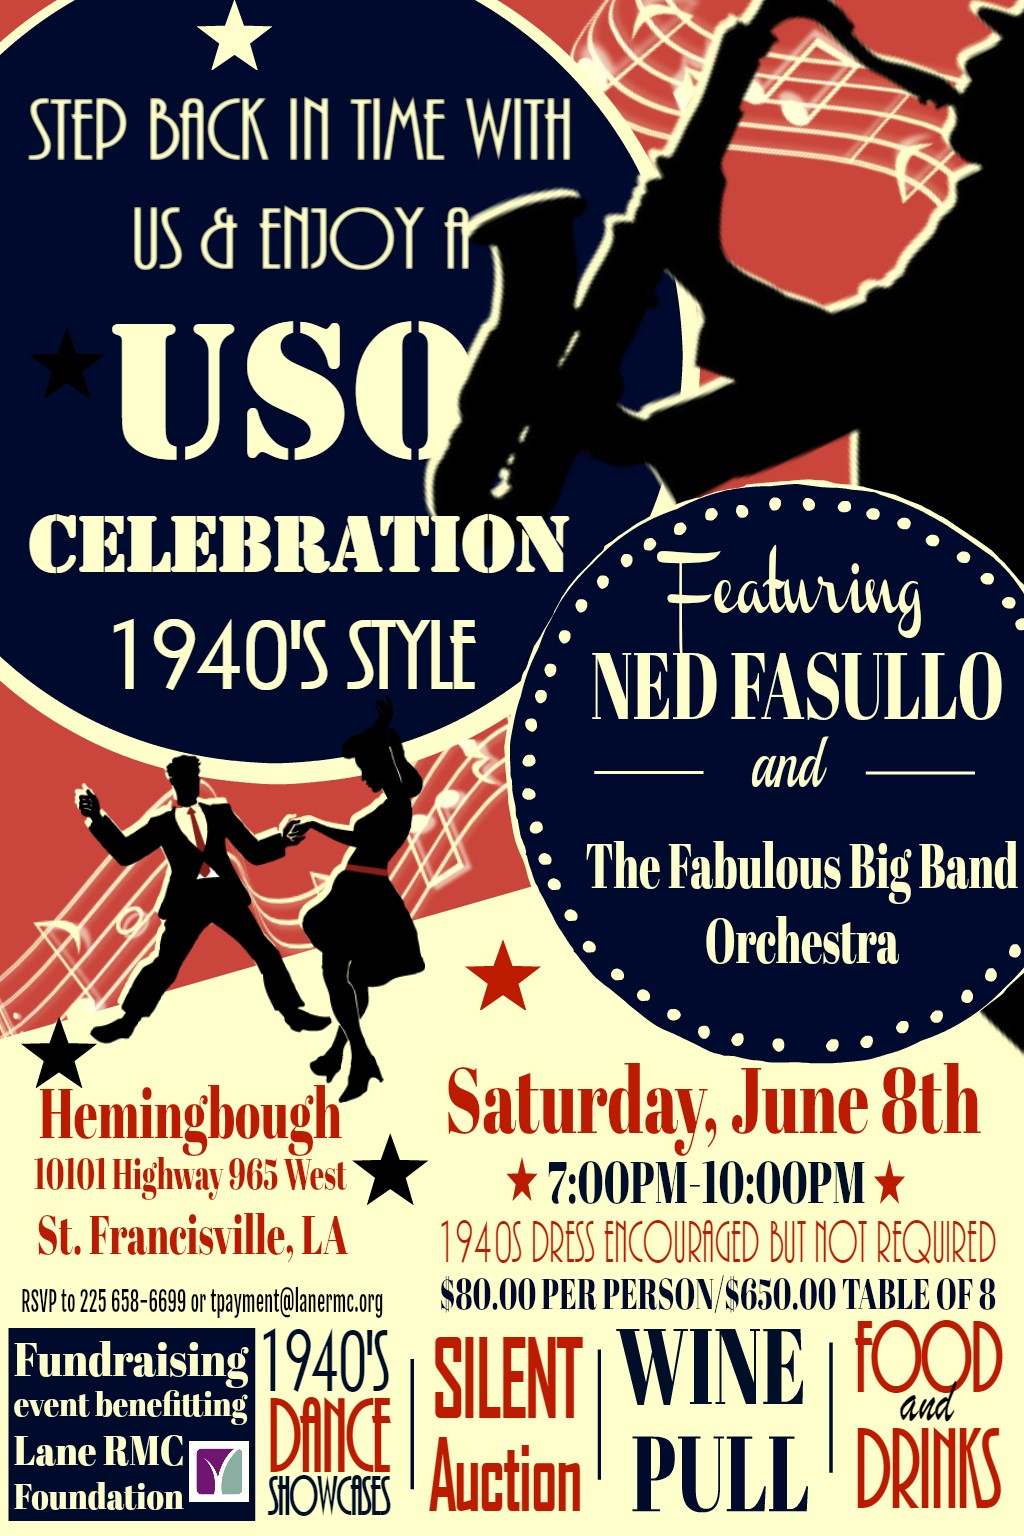 Lane Foundation to Host USO Celebration Fundraiser